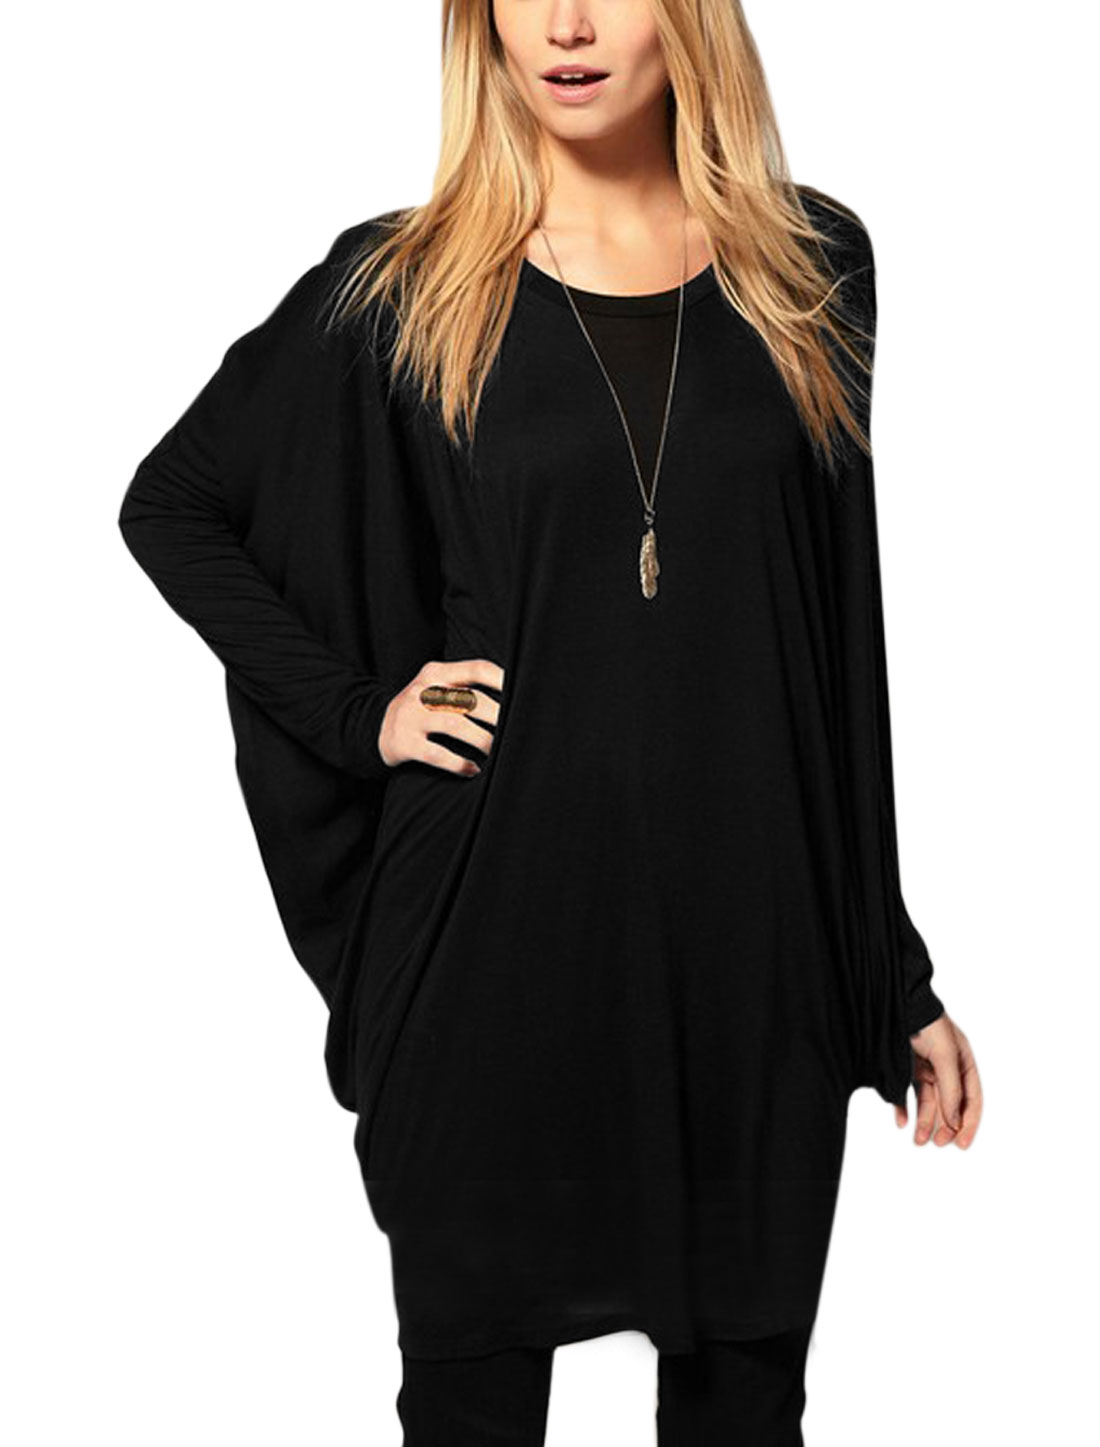 Ladies Long Batwing Sleeves Loose Fit Casual Tunic Tops Black XS